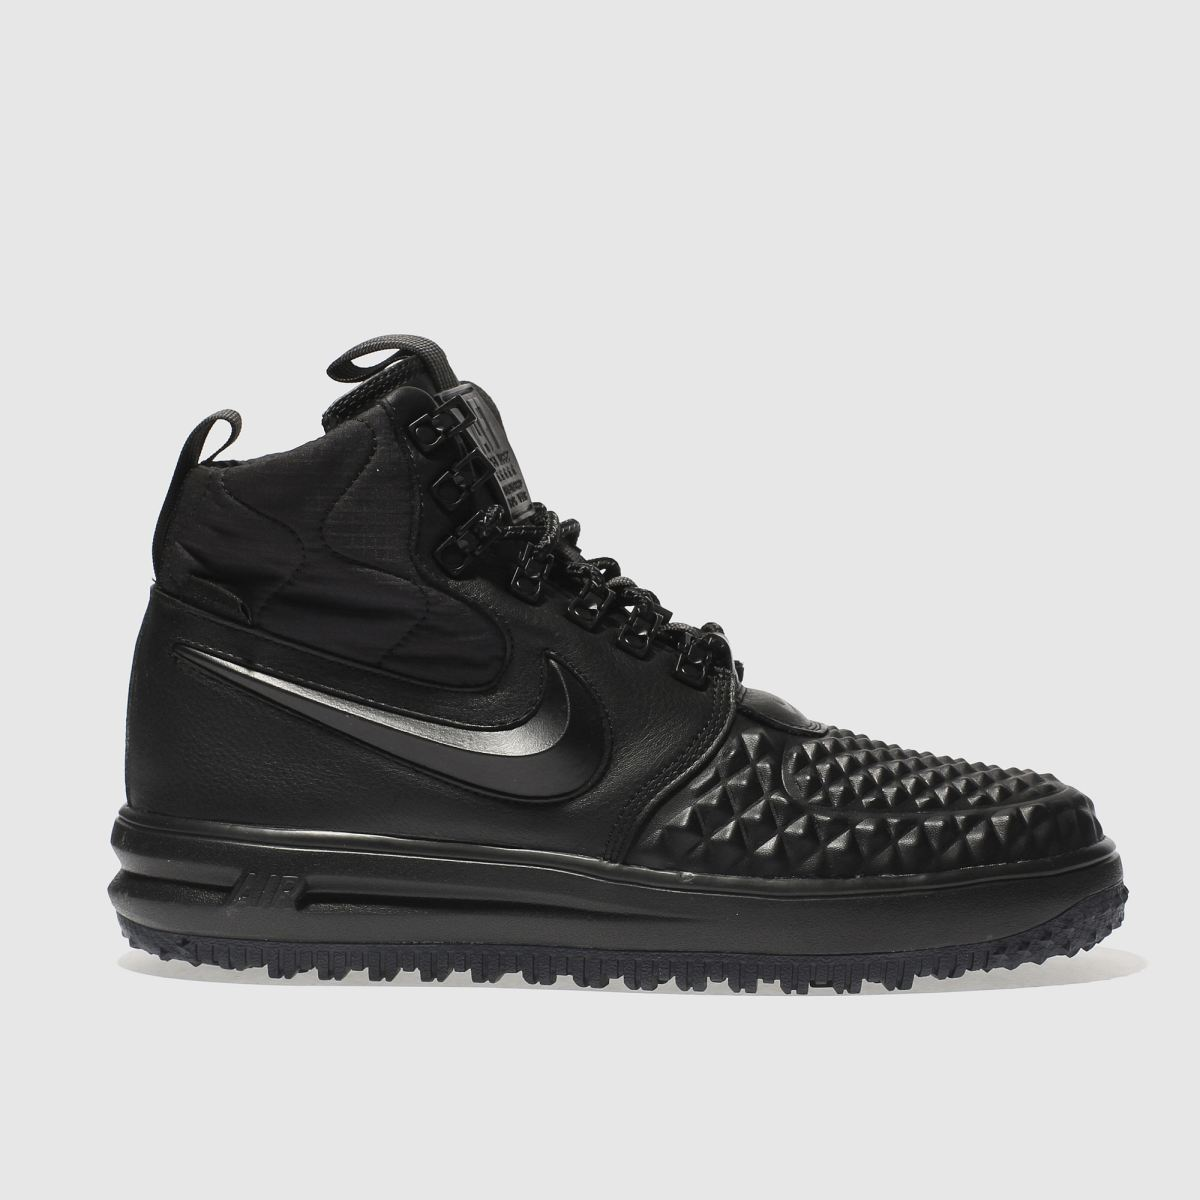 Nike Black Lunar Force 1 Duckboot Trainers